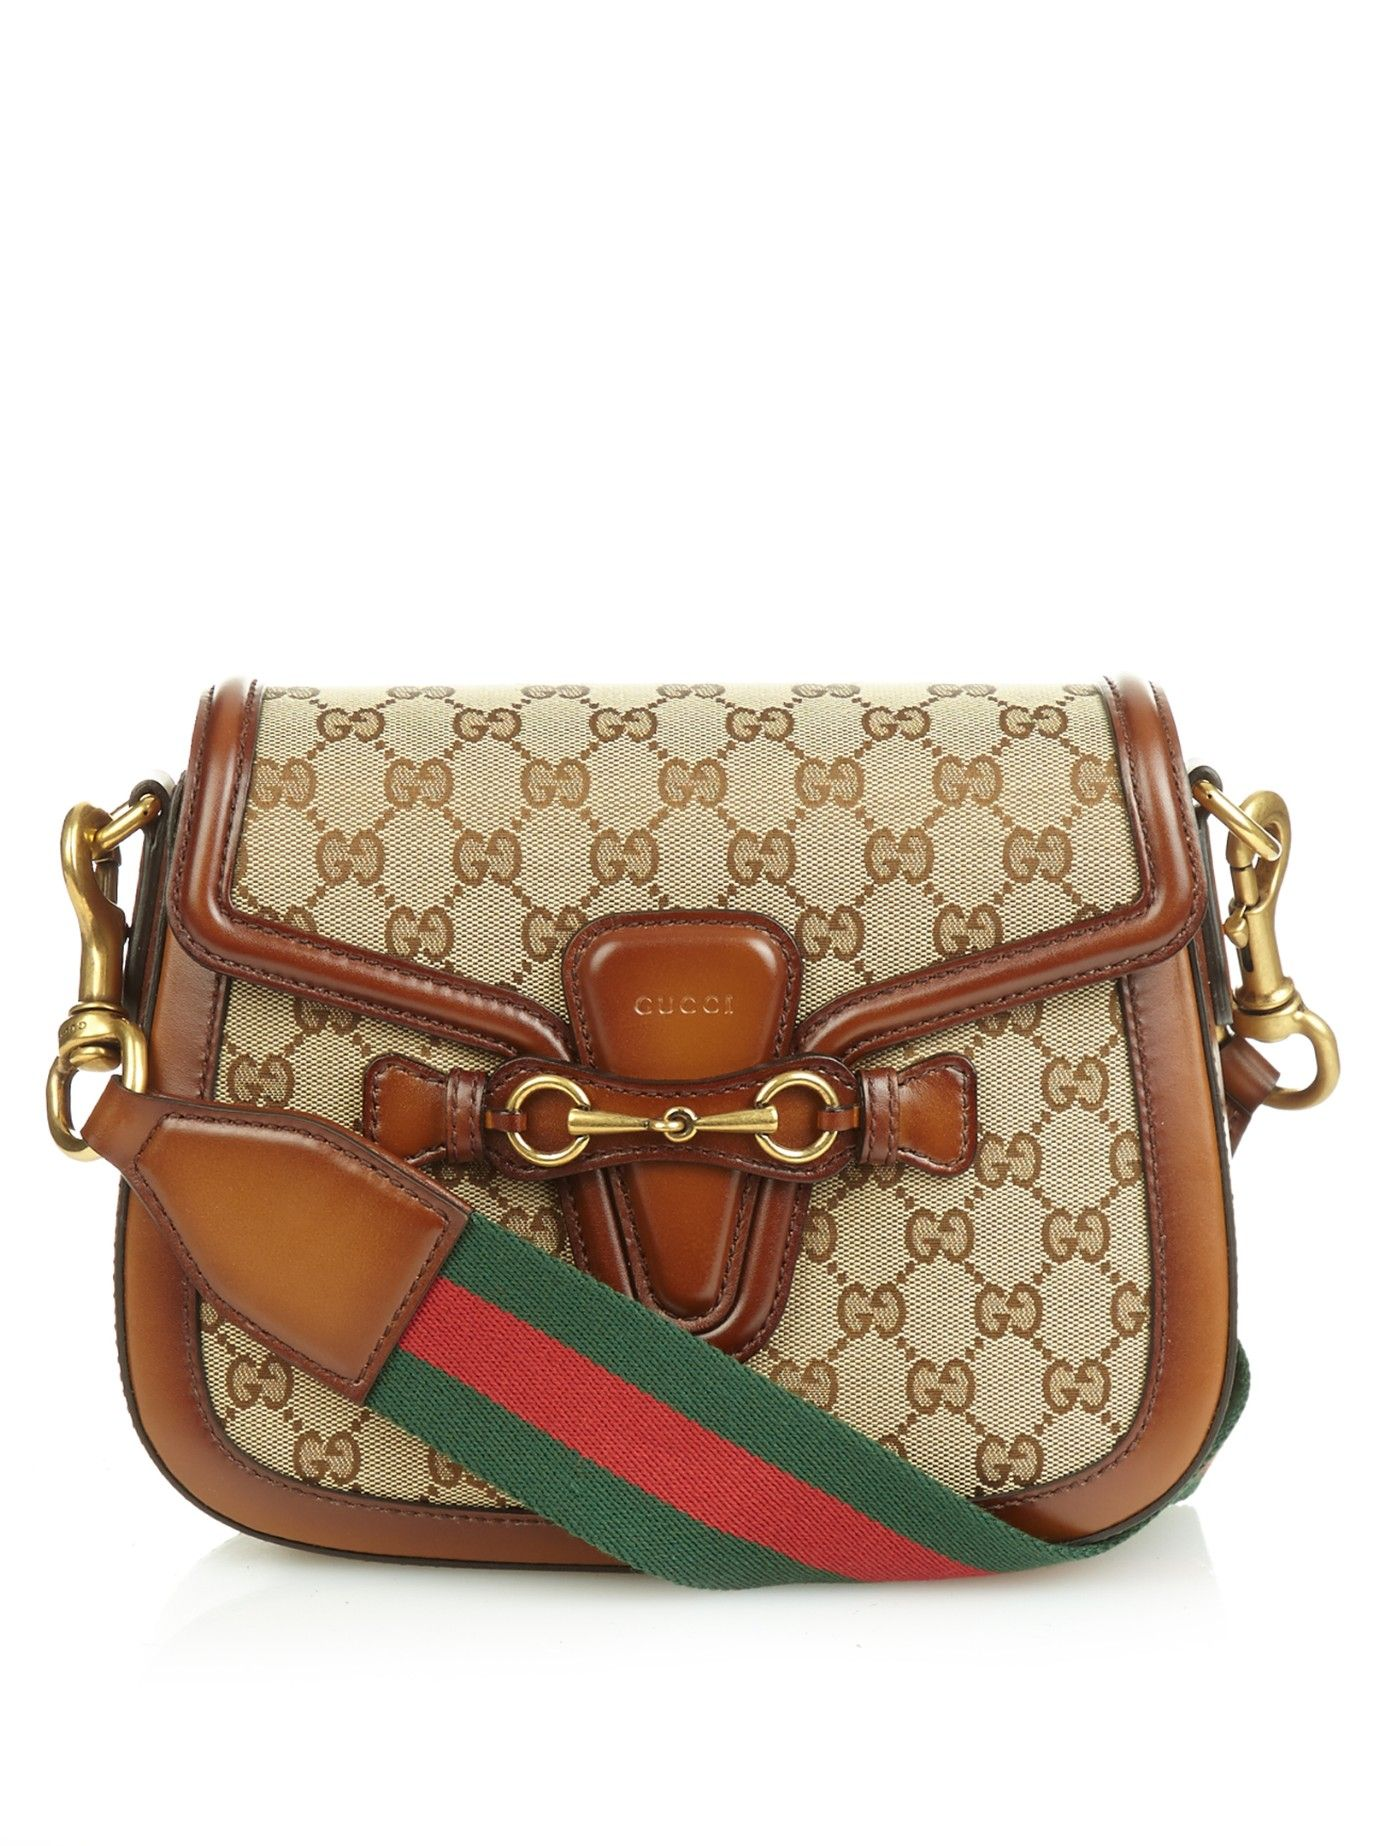 7994784b2d67 Lady Web medium canvas and leather shoulder bag | Gucci | | Bags O ...